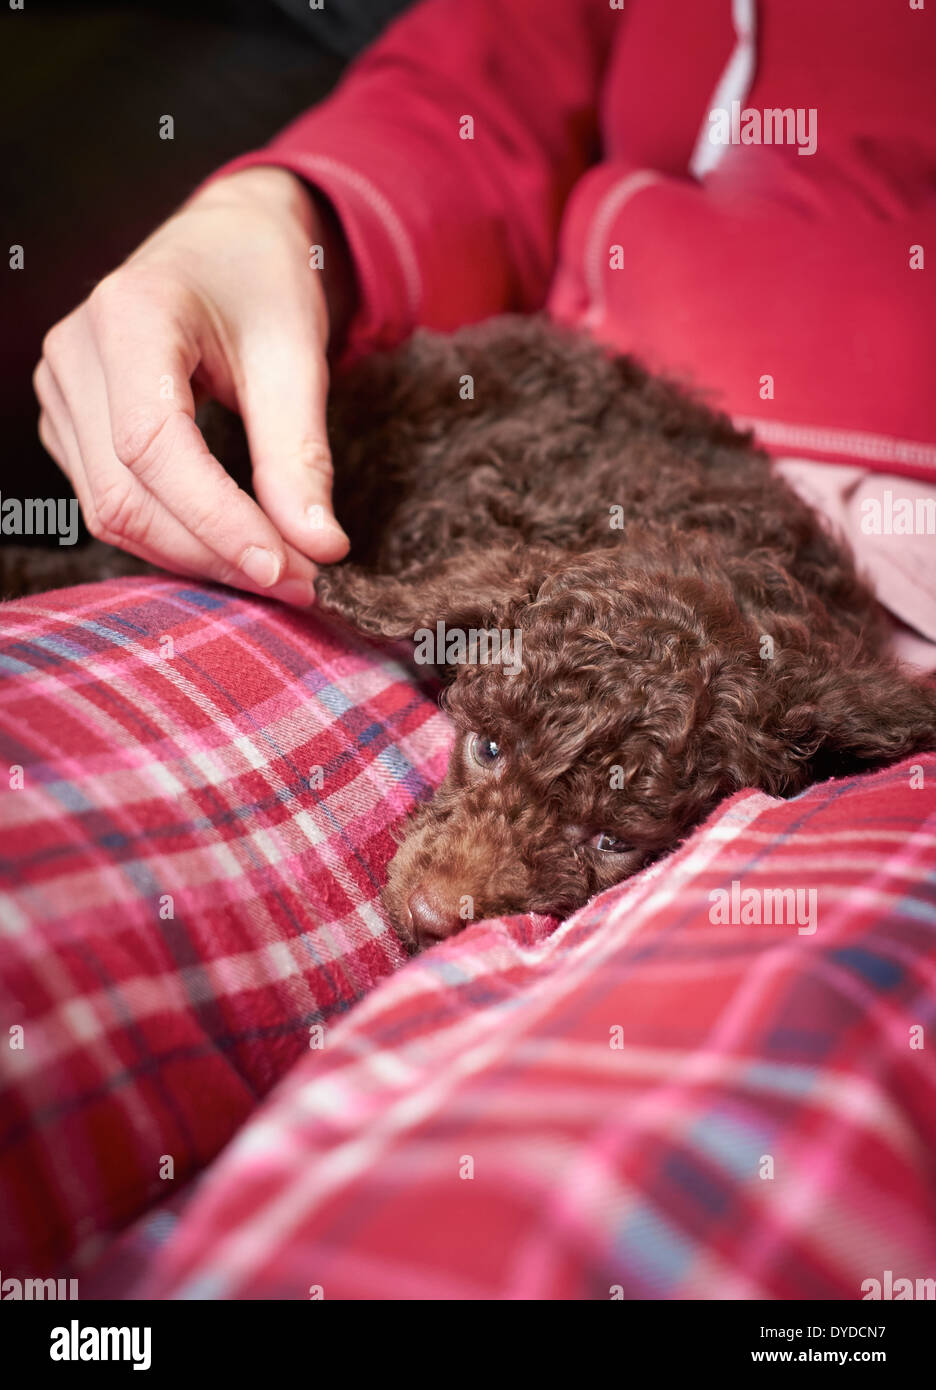 A miniature Poodle Puppy sleeping on a lap. - Stock Image